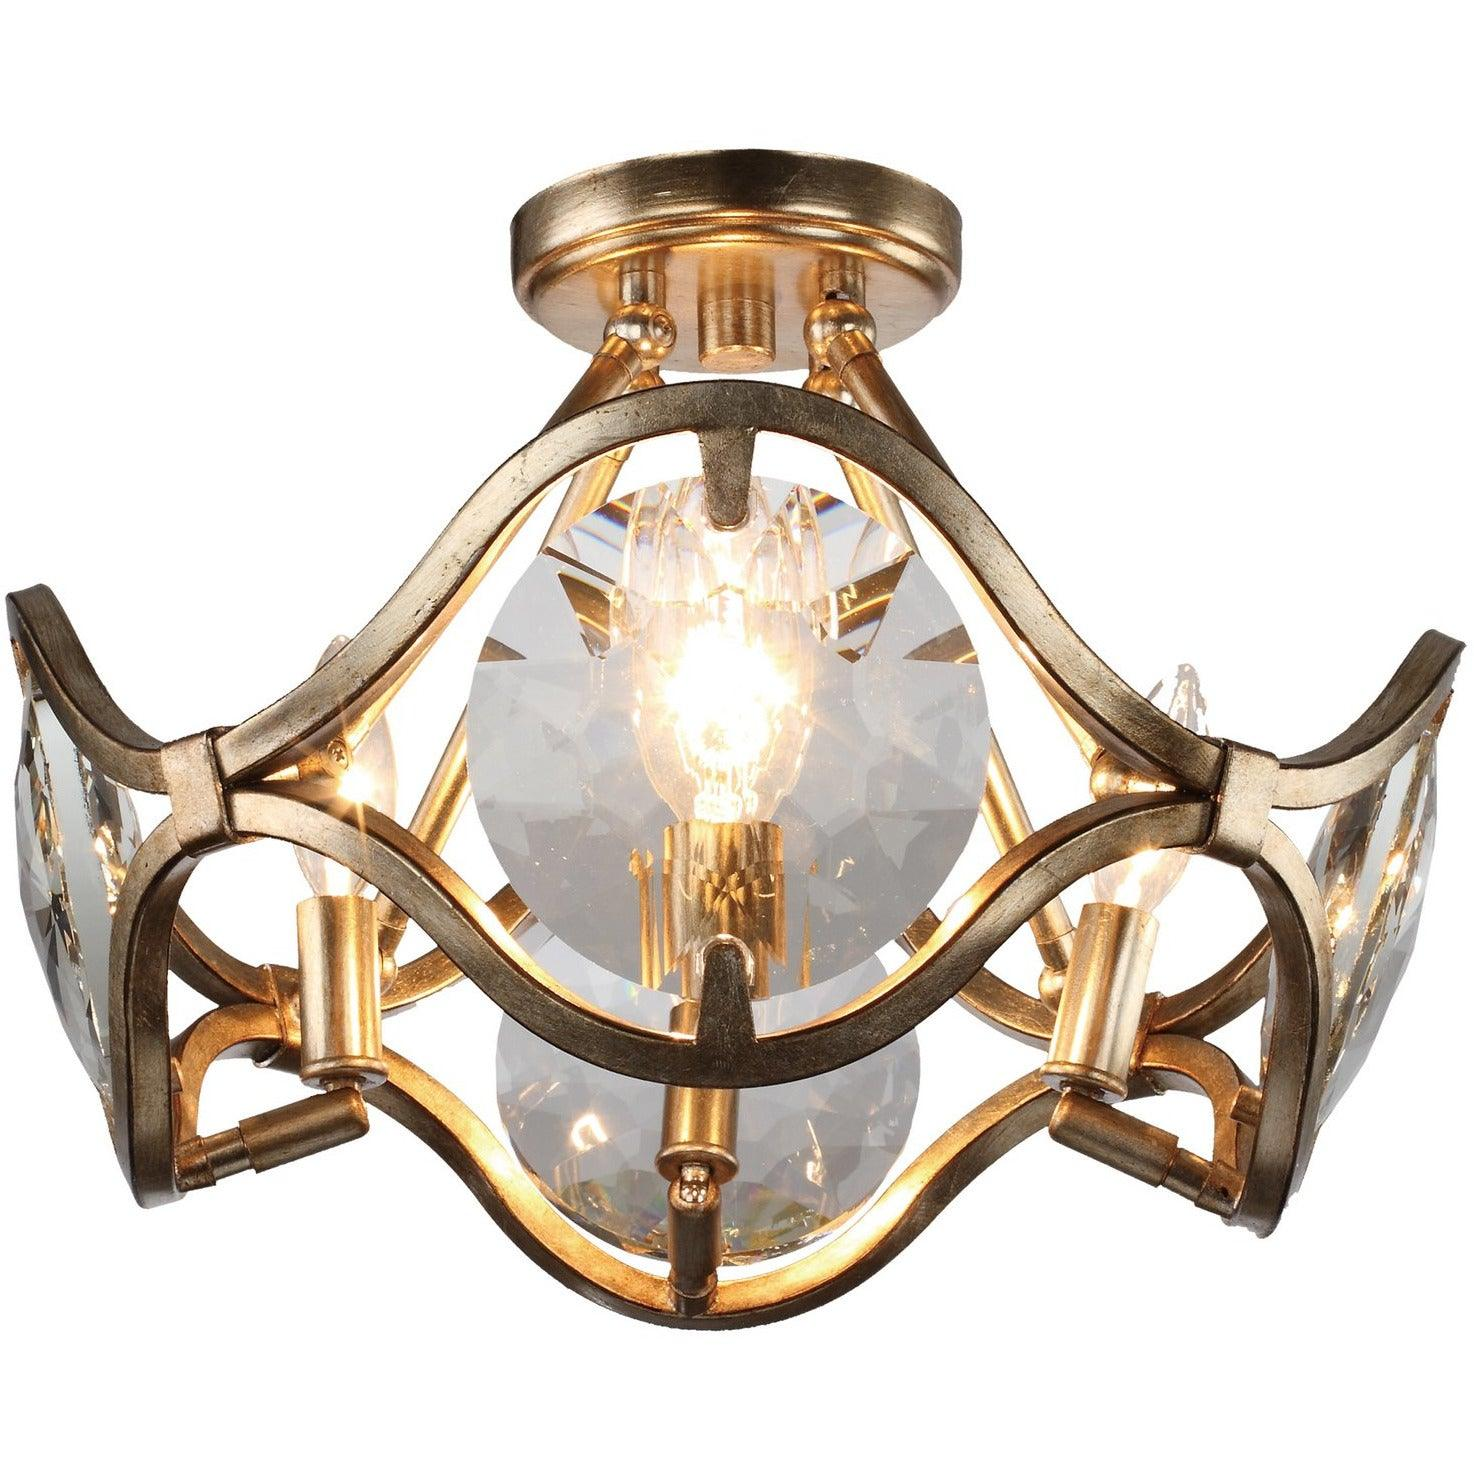 Crystorama - QUI-7624-DT - Four Light Ceiling Mount - Quincy - Distressed Twilight